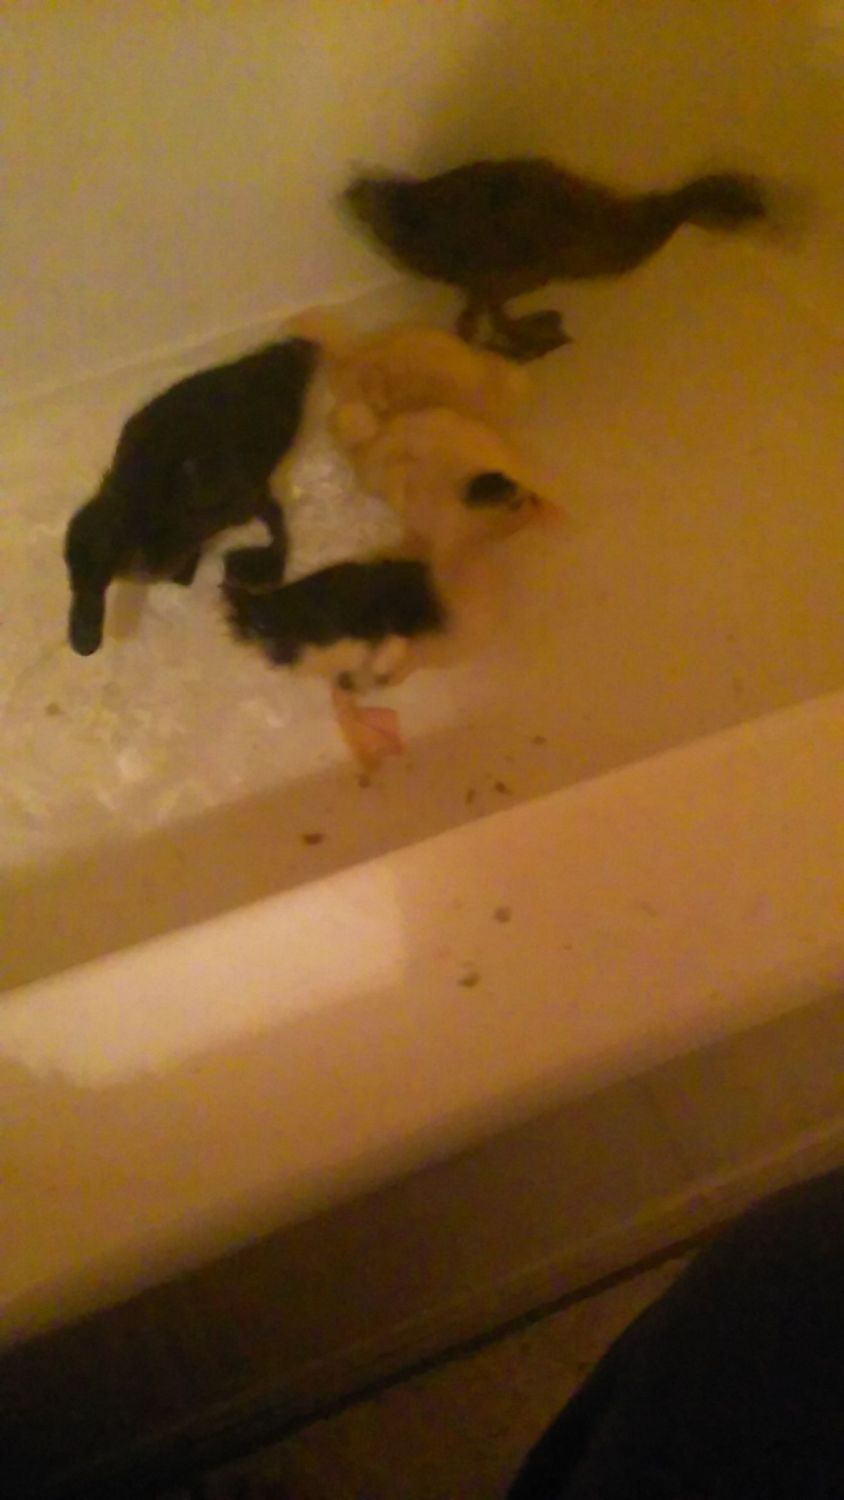 Bath time for the baby ducks